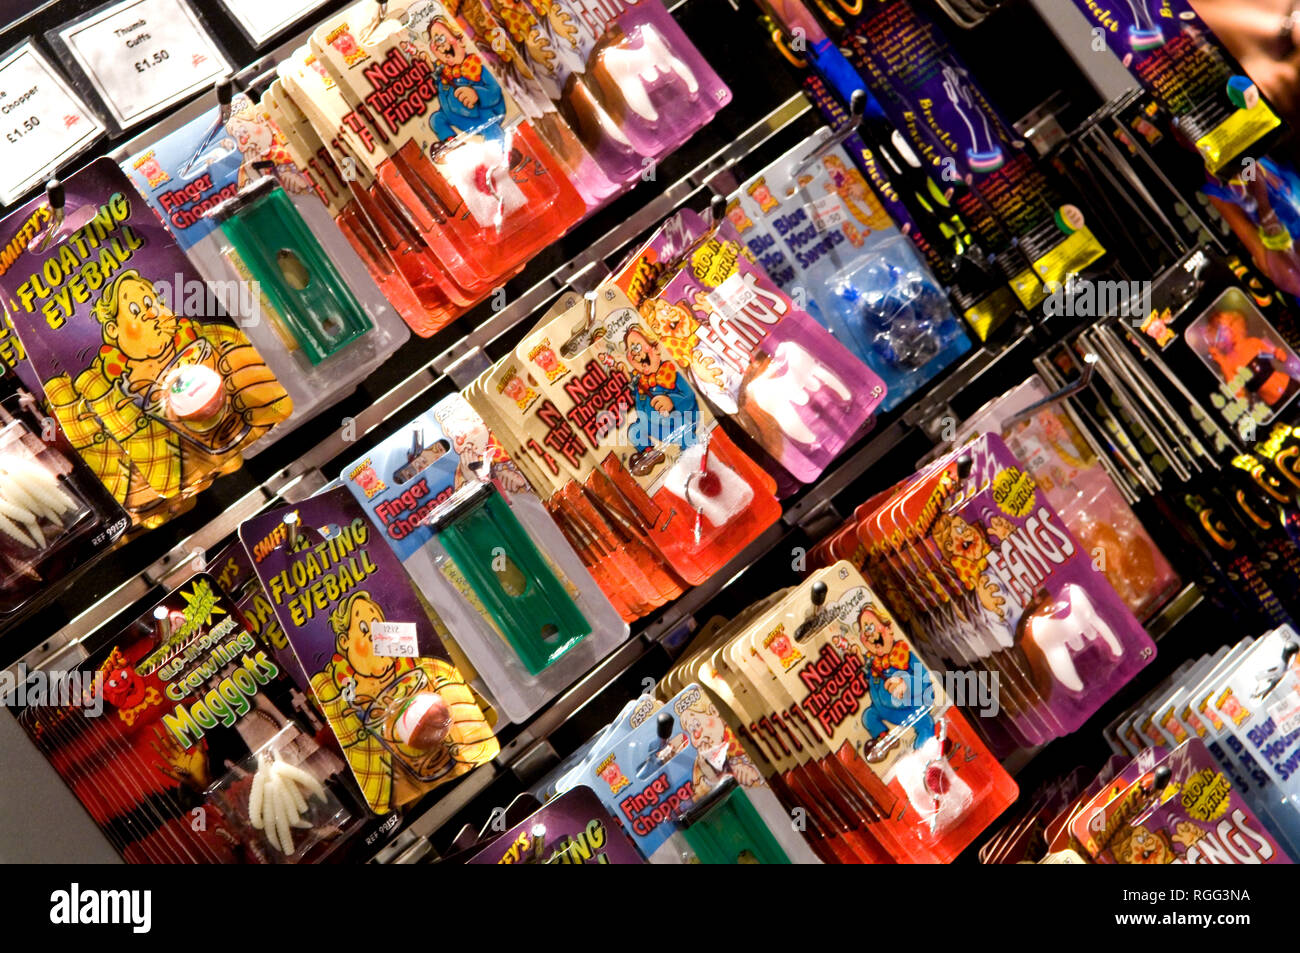 Gruesome toys and novelties such as the floating eyeball and pretend maggots for sale in the London Dungeon. - Stock Image